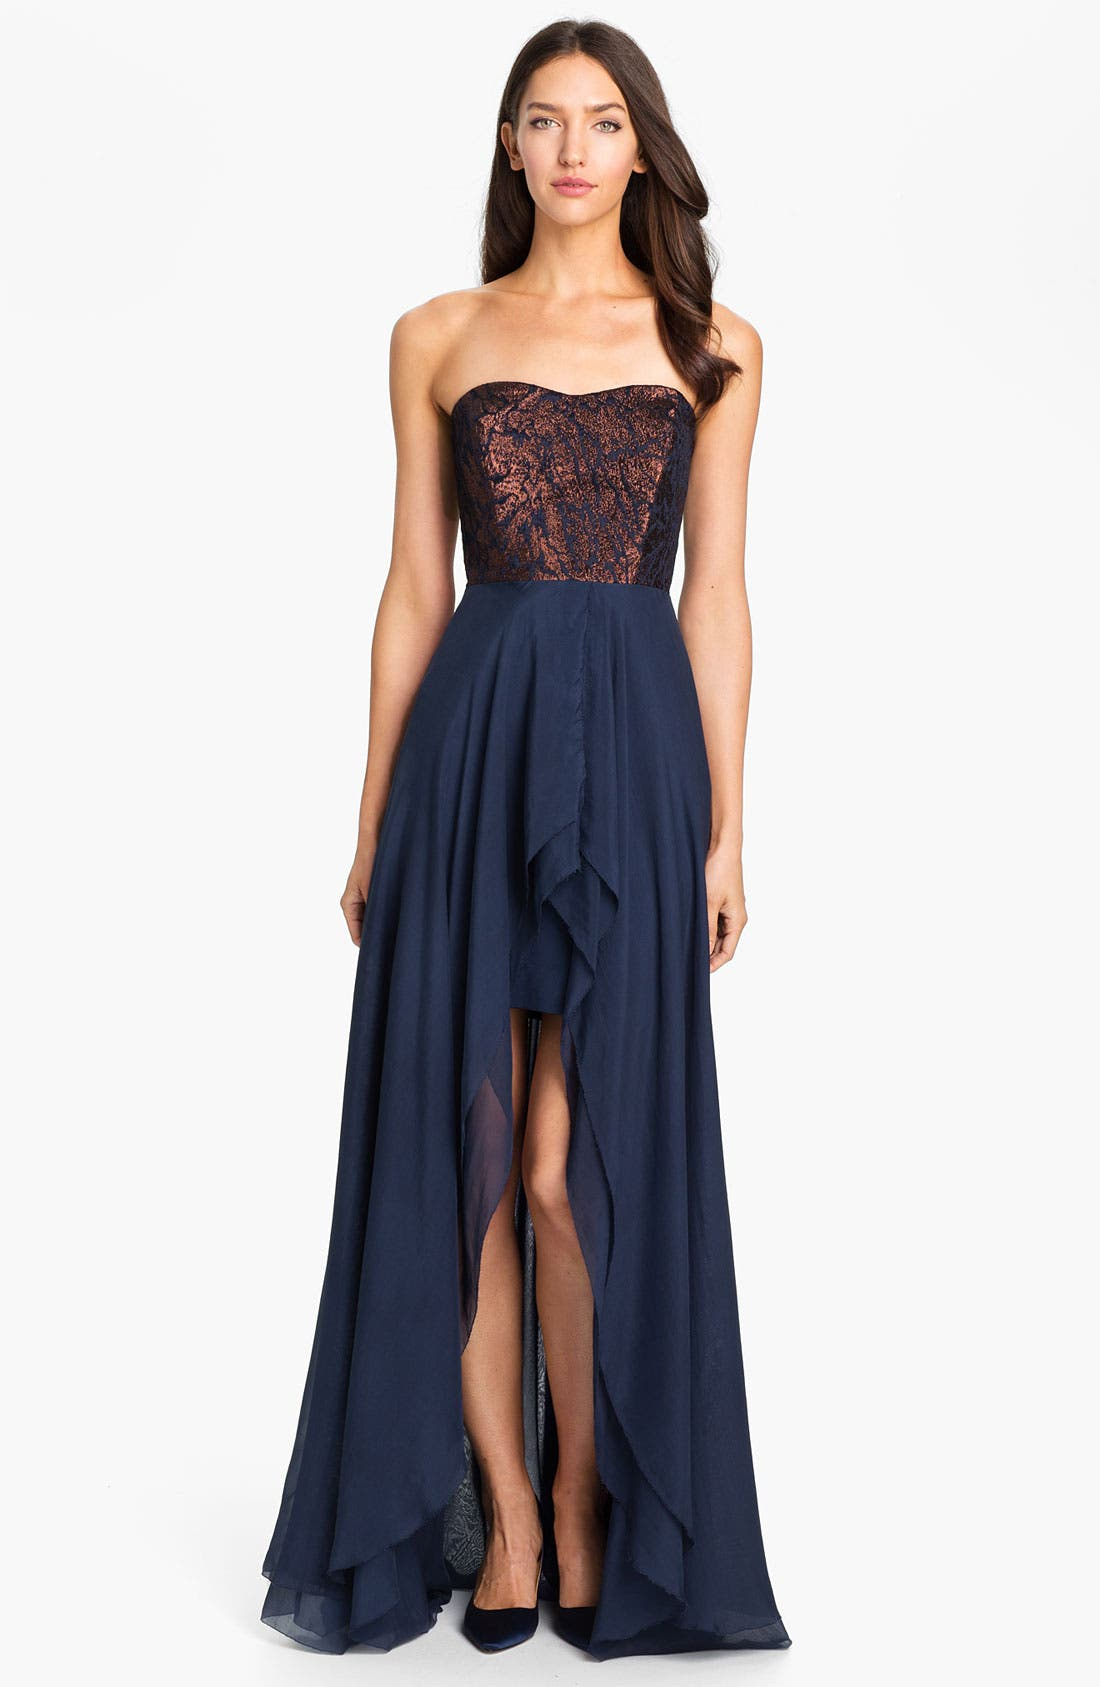 Alternate Image 1 Selected - Nicole Miller Strapless Jacquard Bodice High/Low Silk Gown